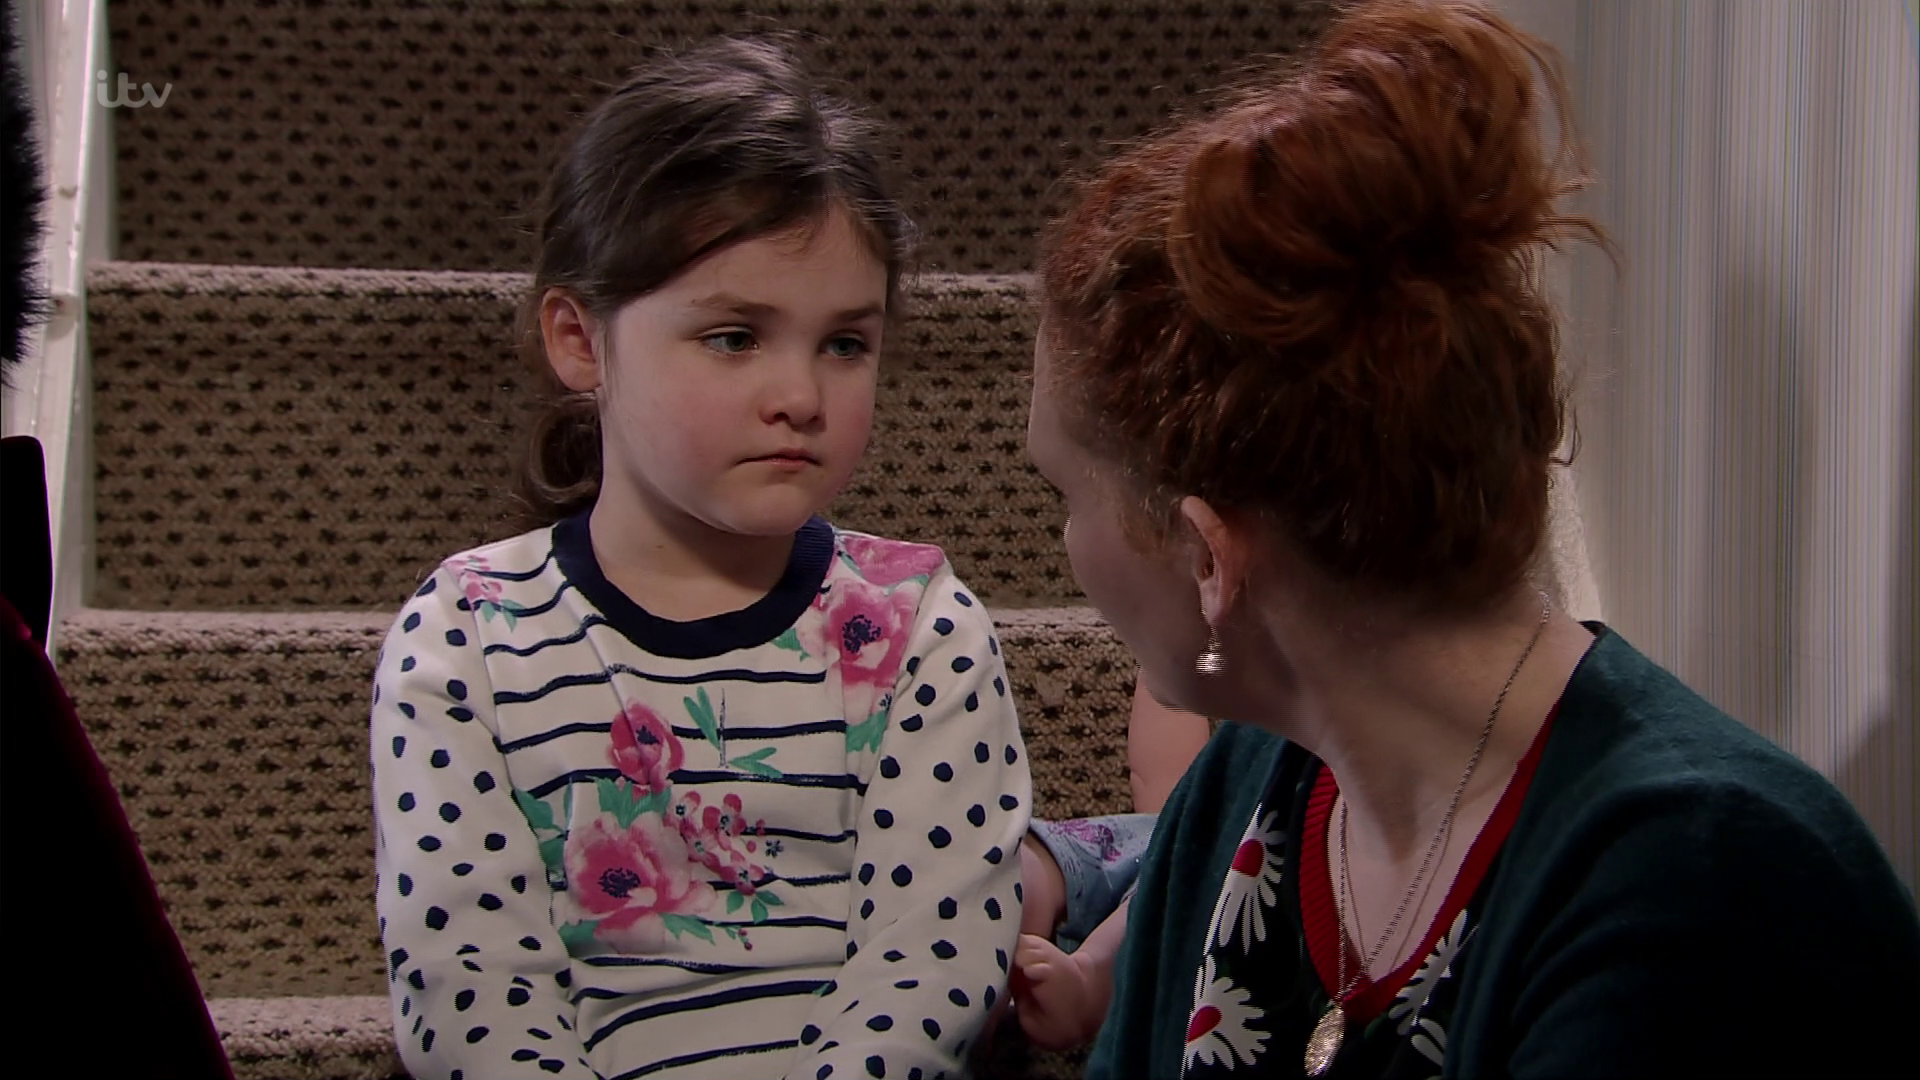 Coronation Street viewers compare Hope to a 'devil child' as she's caught trying to push her cousin down the stairs